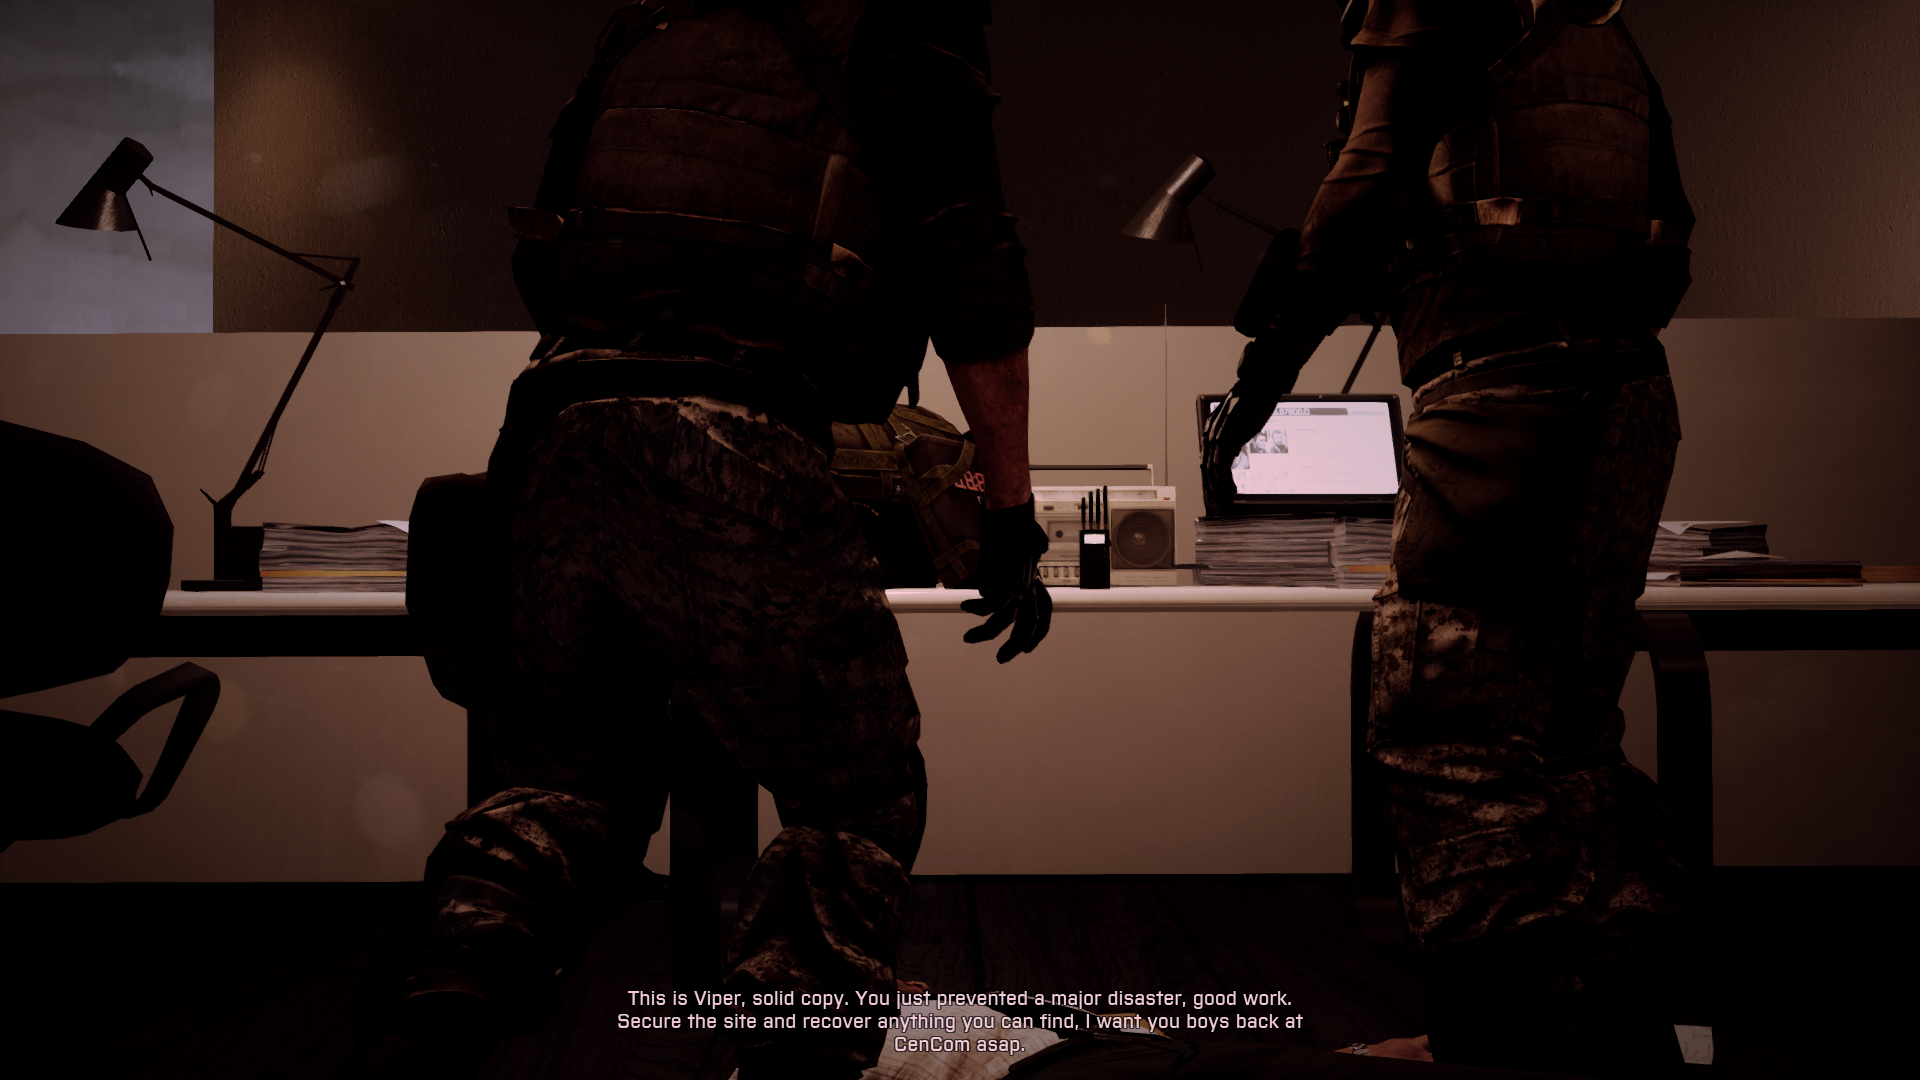 bf32014011721240945112a7.png